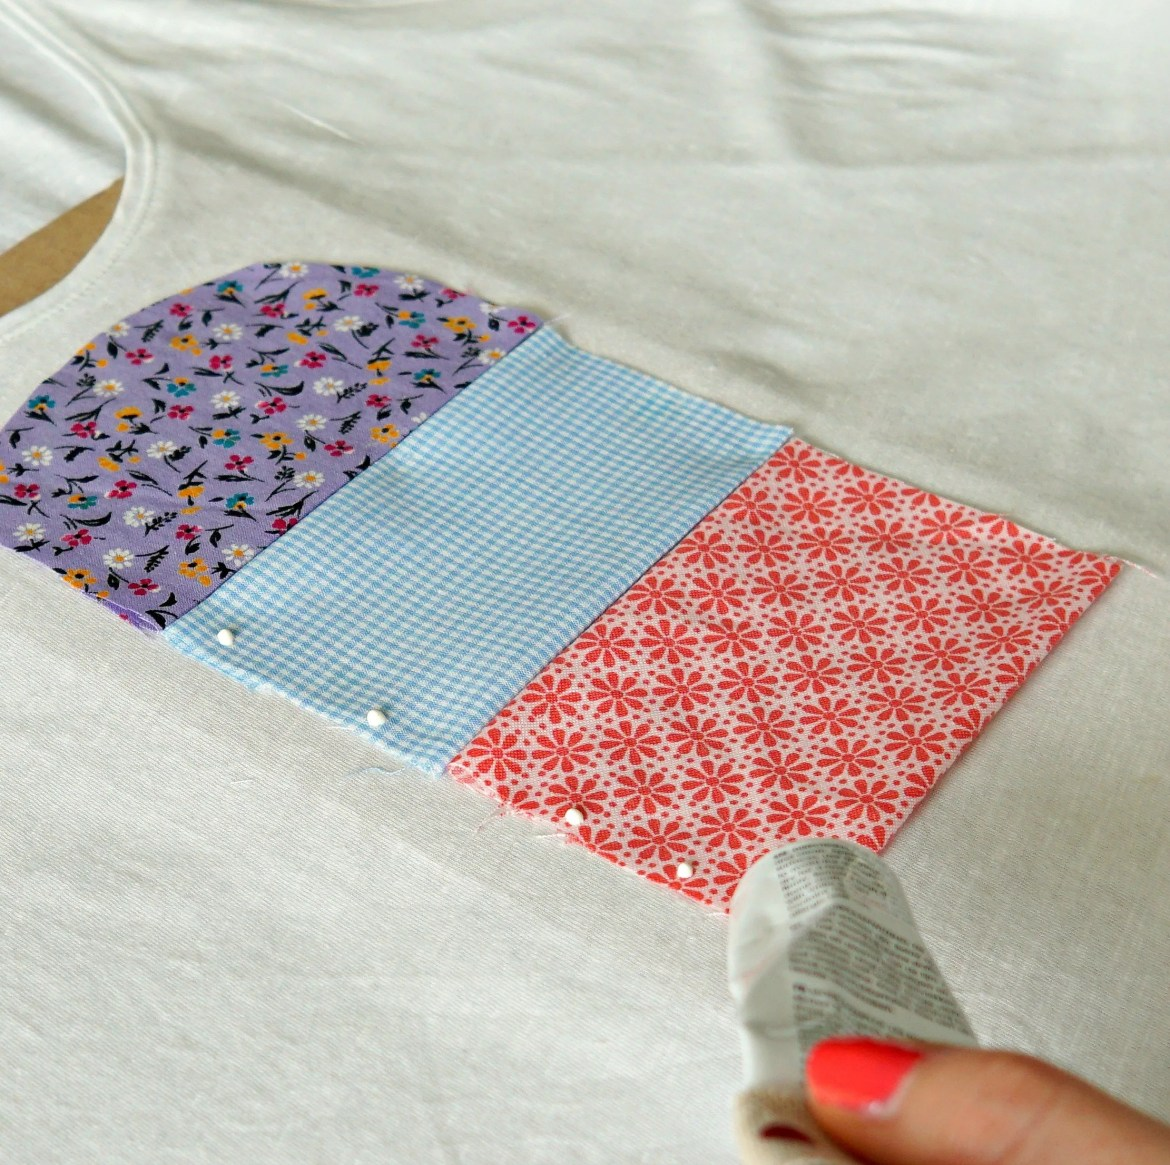 Tutorial on How To make a customized ice cream popsicle shirt with scraps of fabric! DIY by The Makeup Dummy